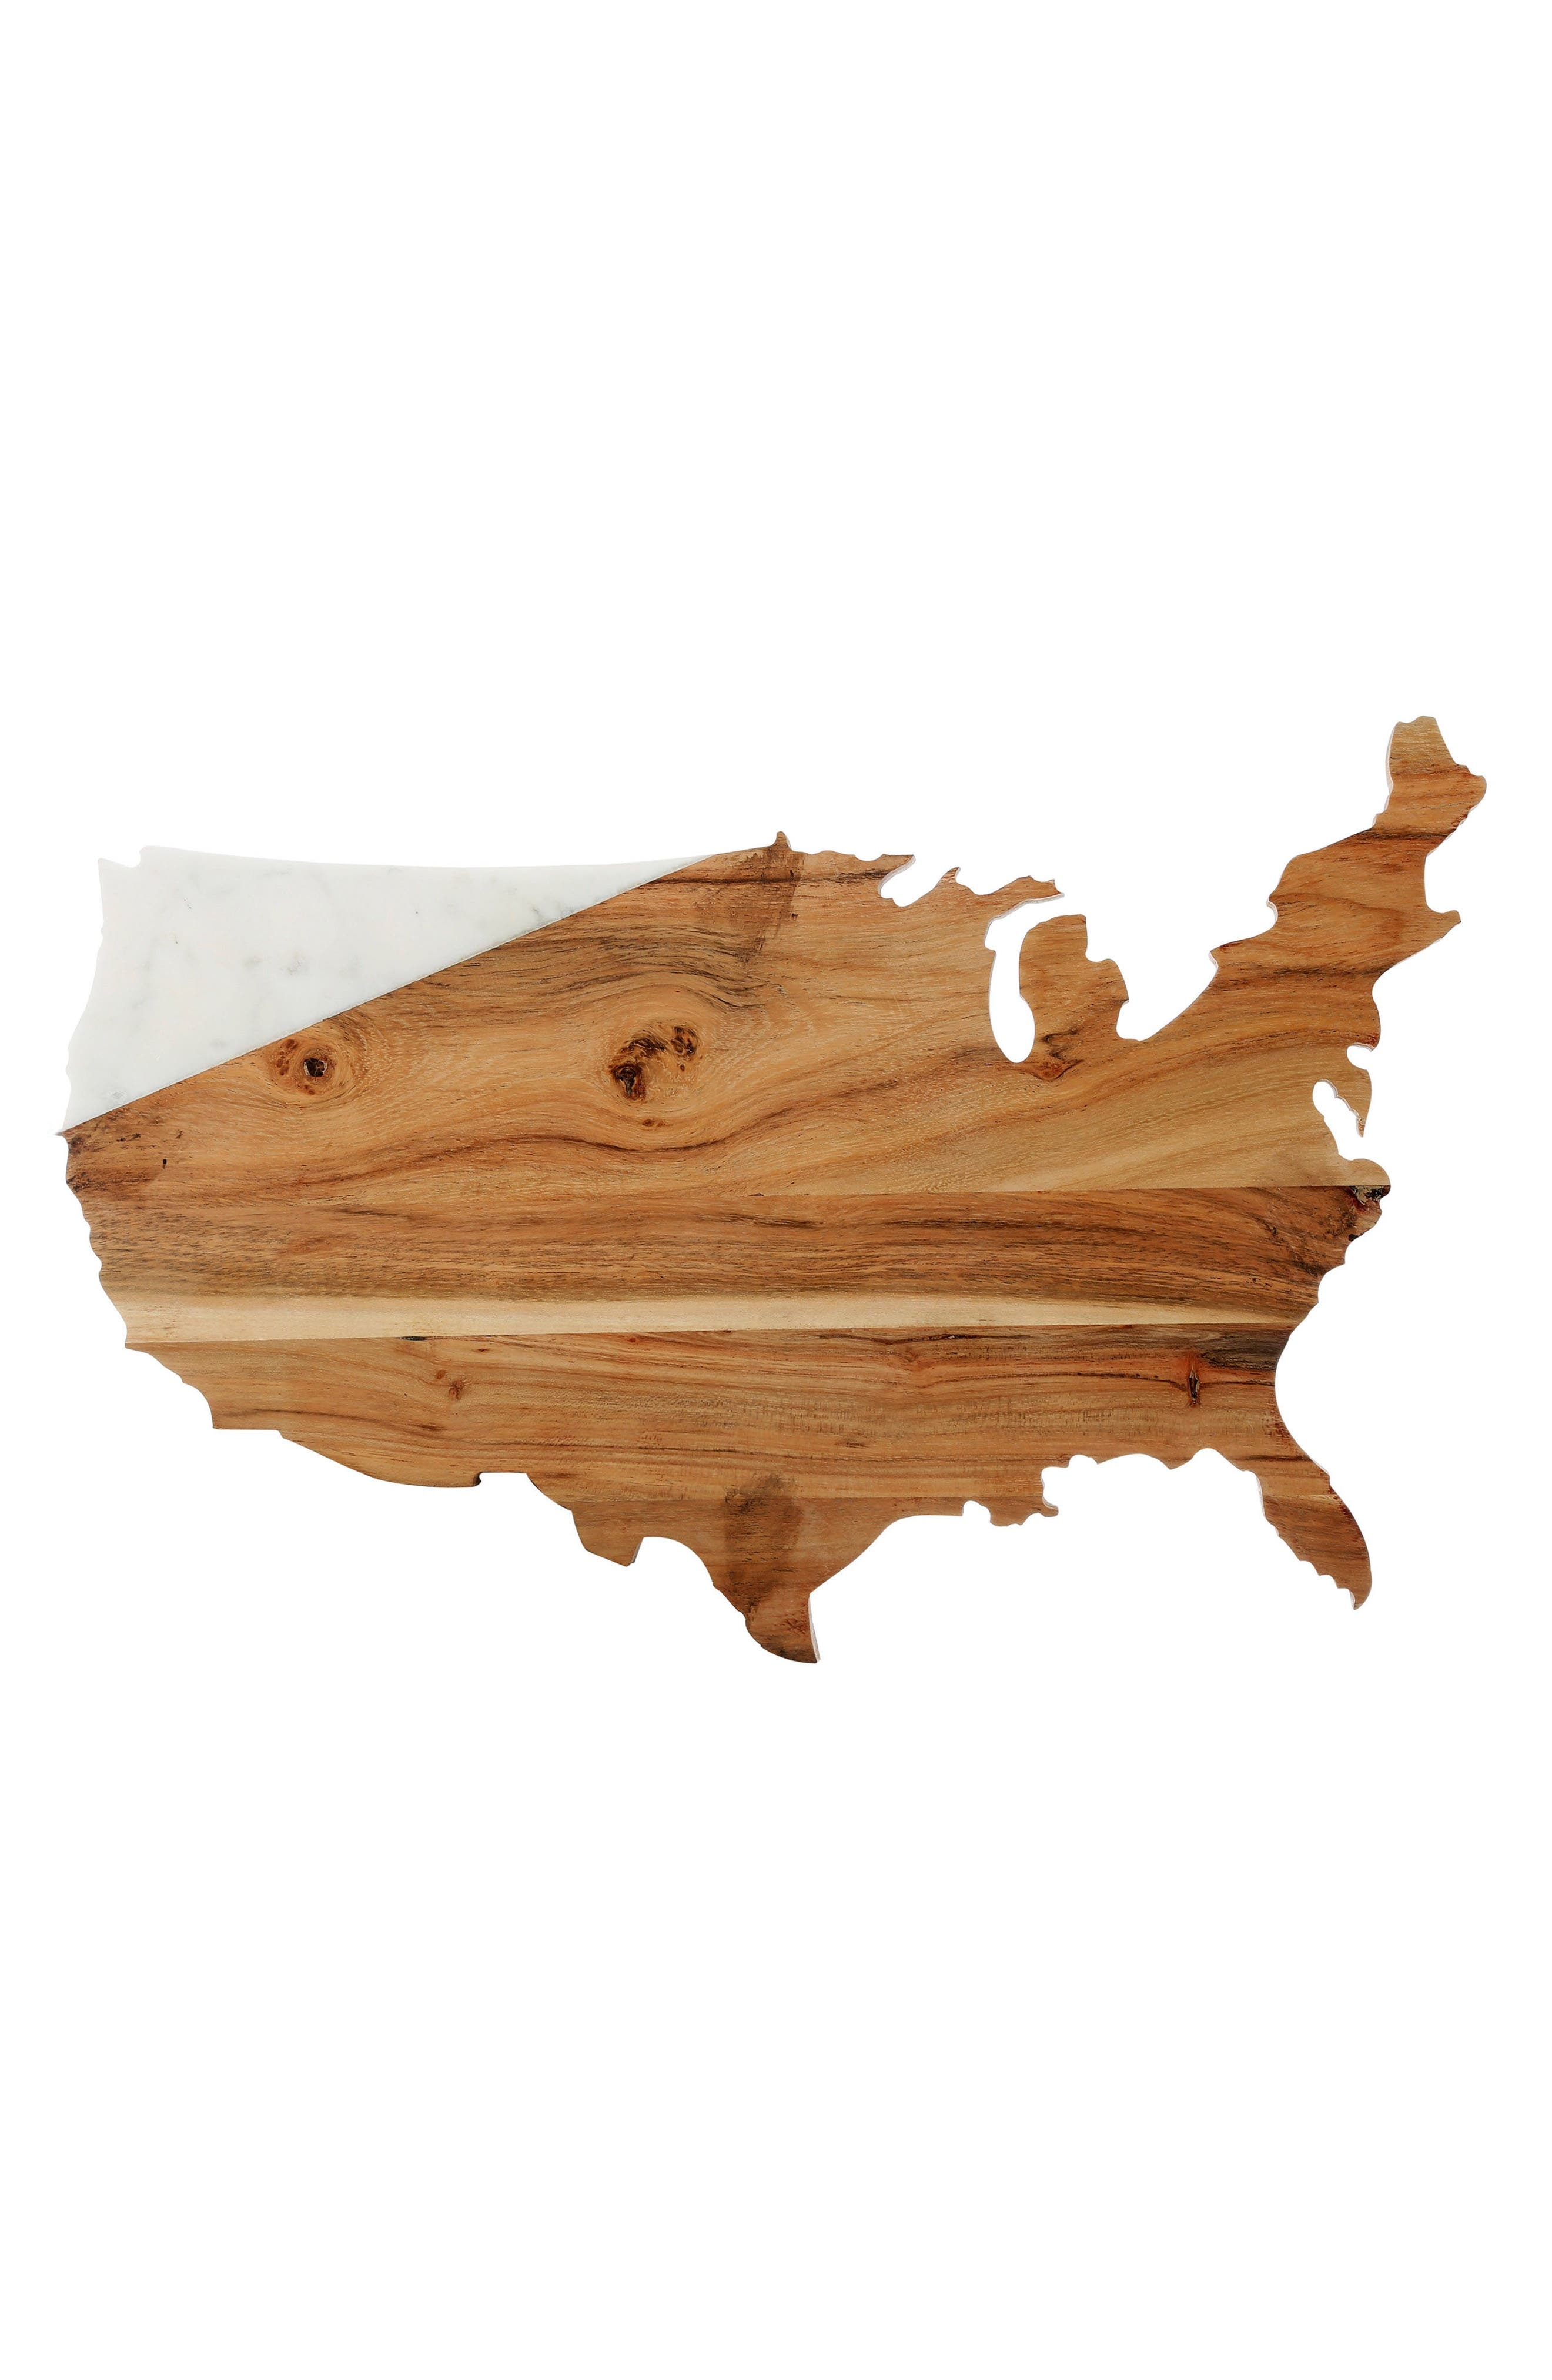 USA Marble & Wood Serving Board,                         Main,                         color, White/Brown